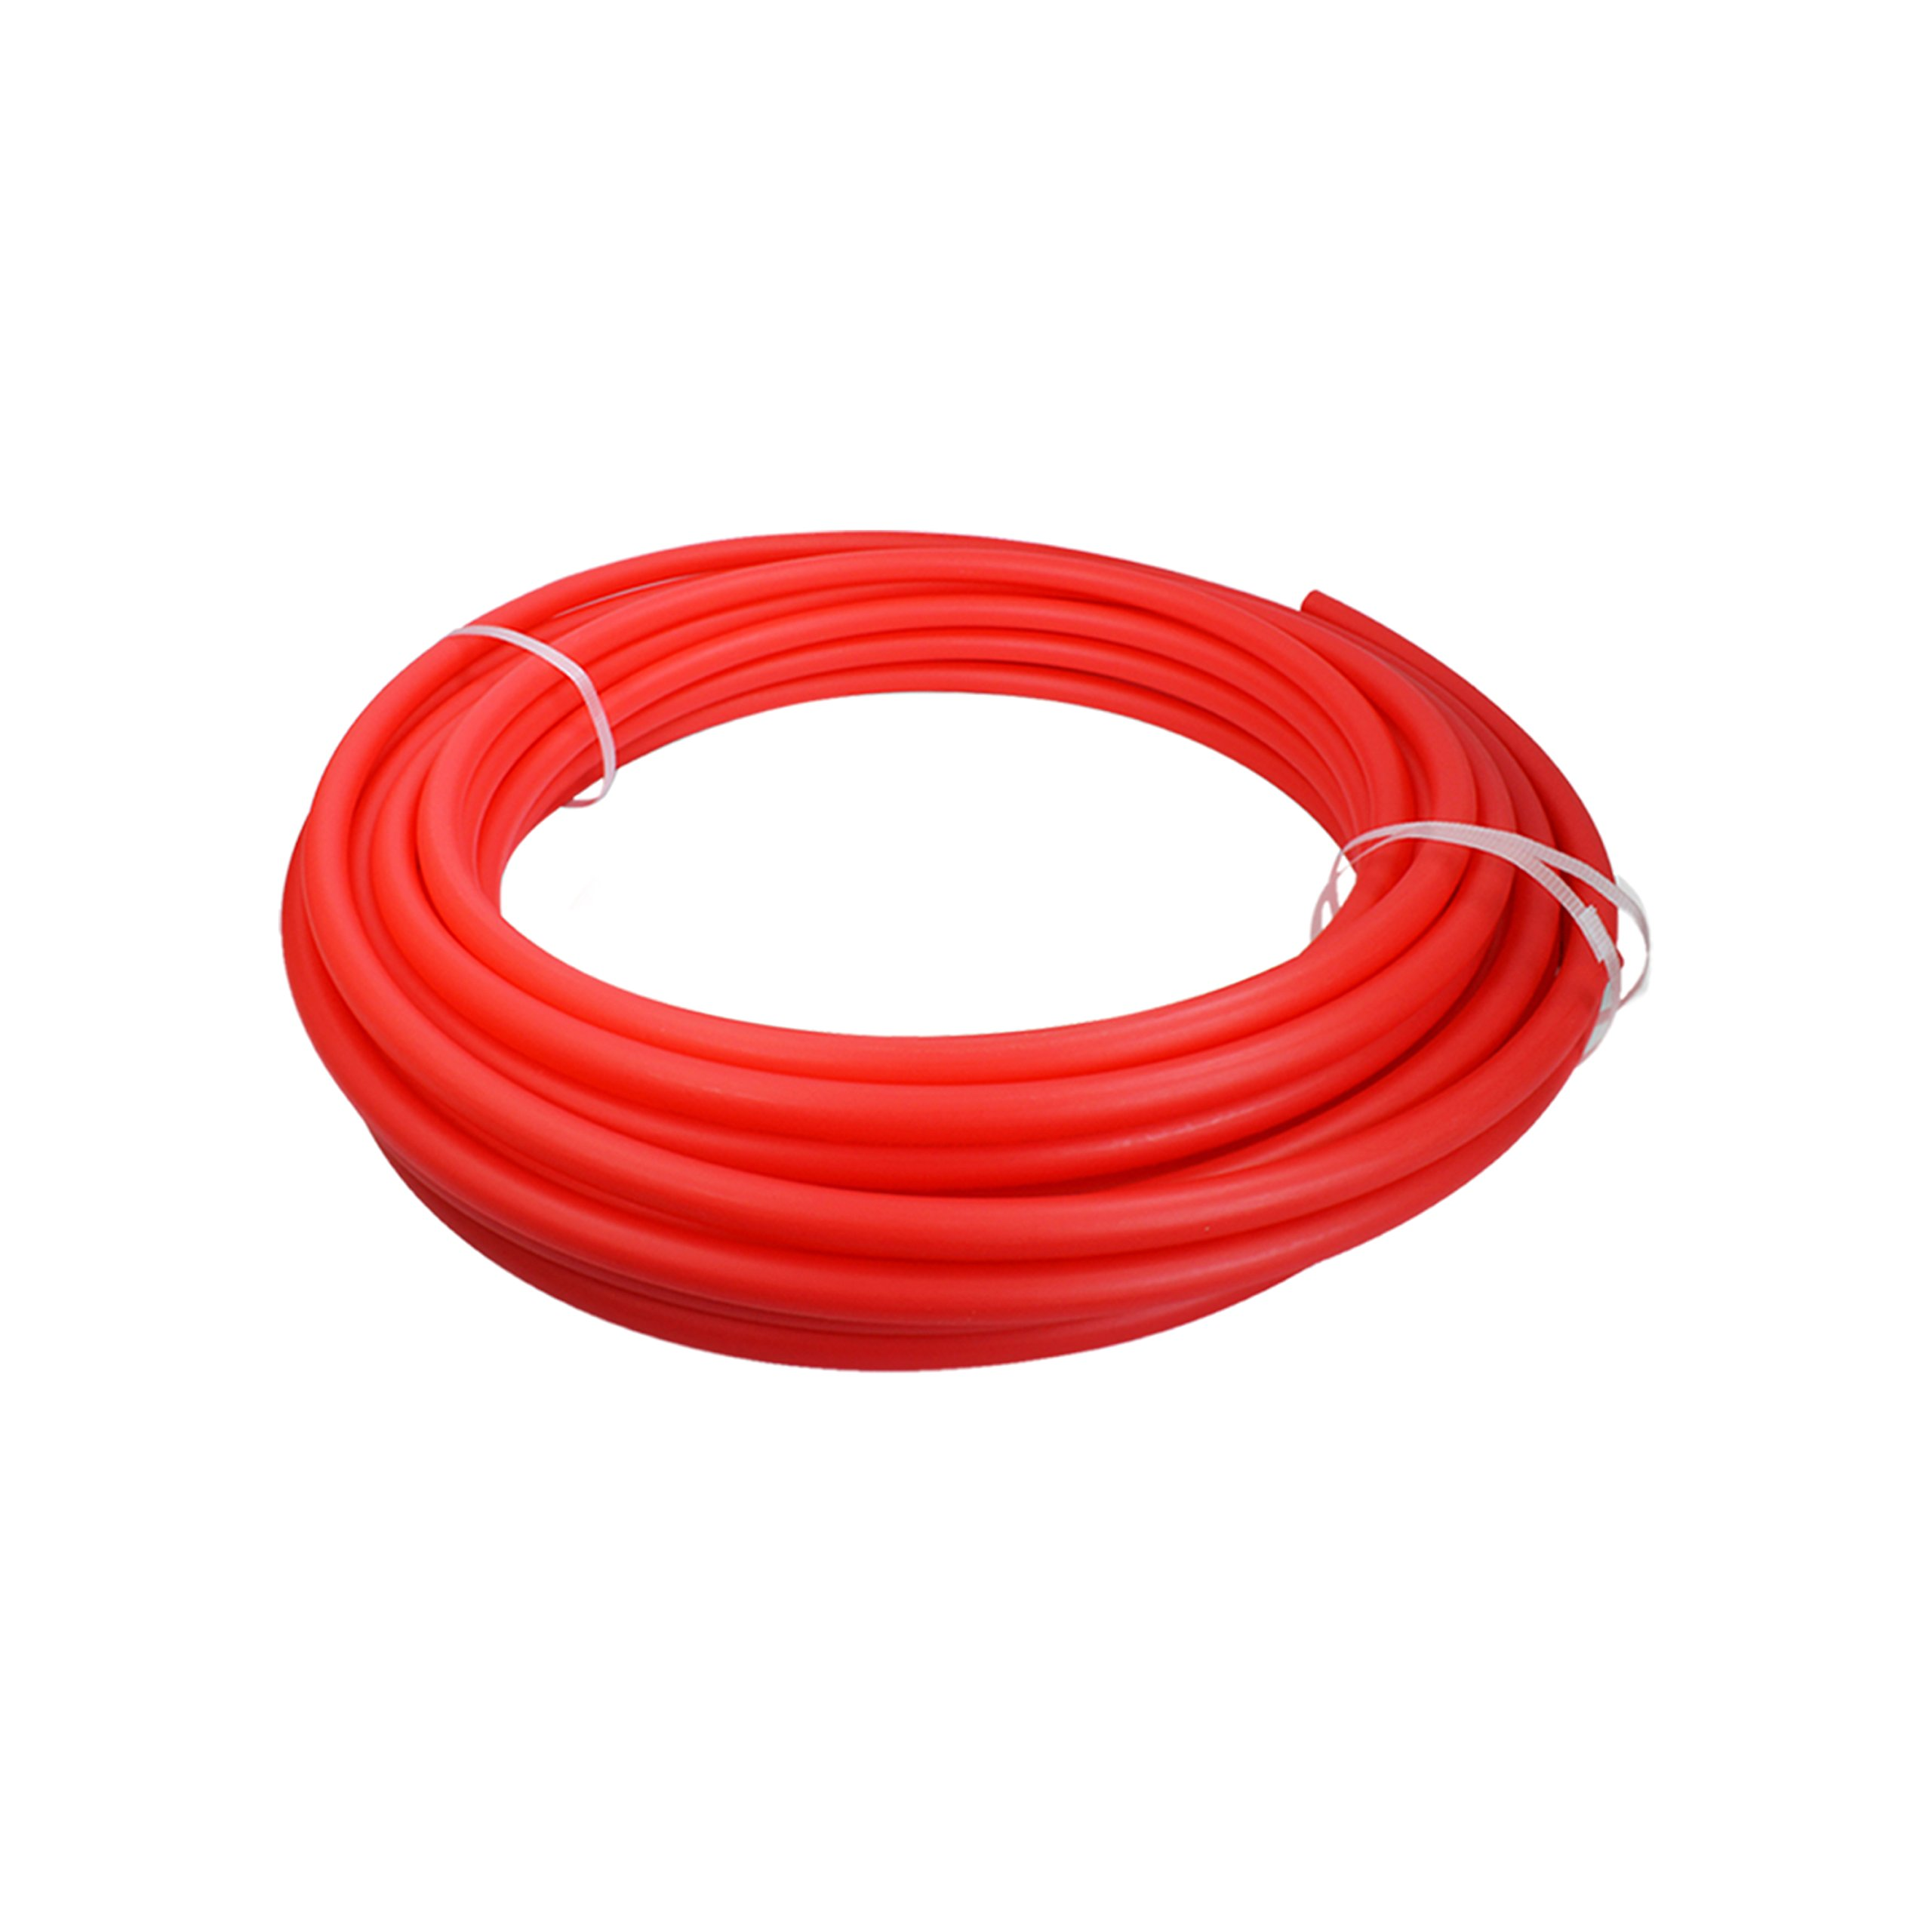 Pexflow PEX Potable Water Tubing - PFW-R1300 1 Inch X 300 Feet Tube Coil for Non-Barrier PEX-B Residential & Commercial Hot & Cold Water Plumbing Application (Red)